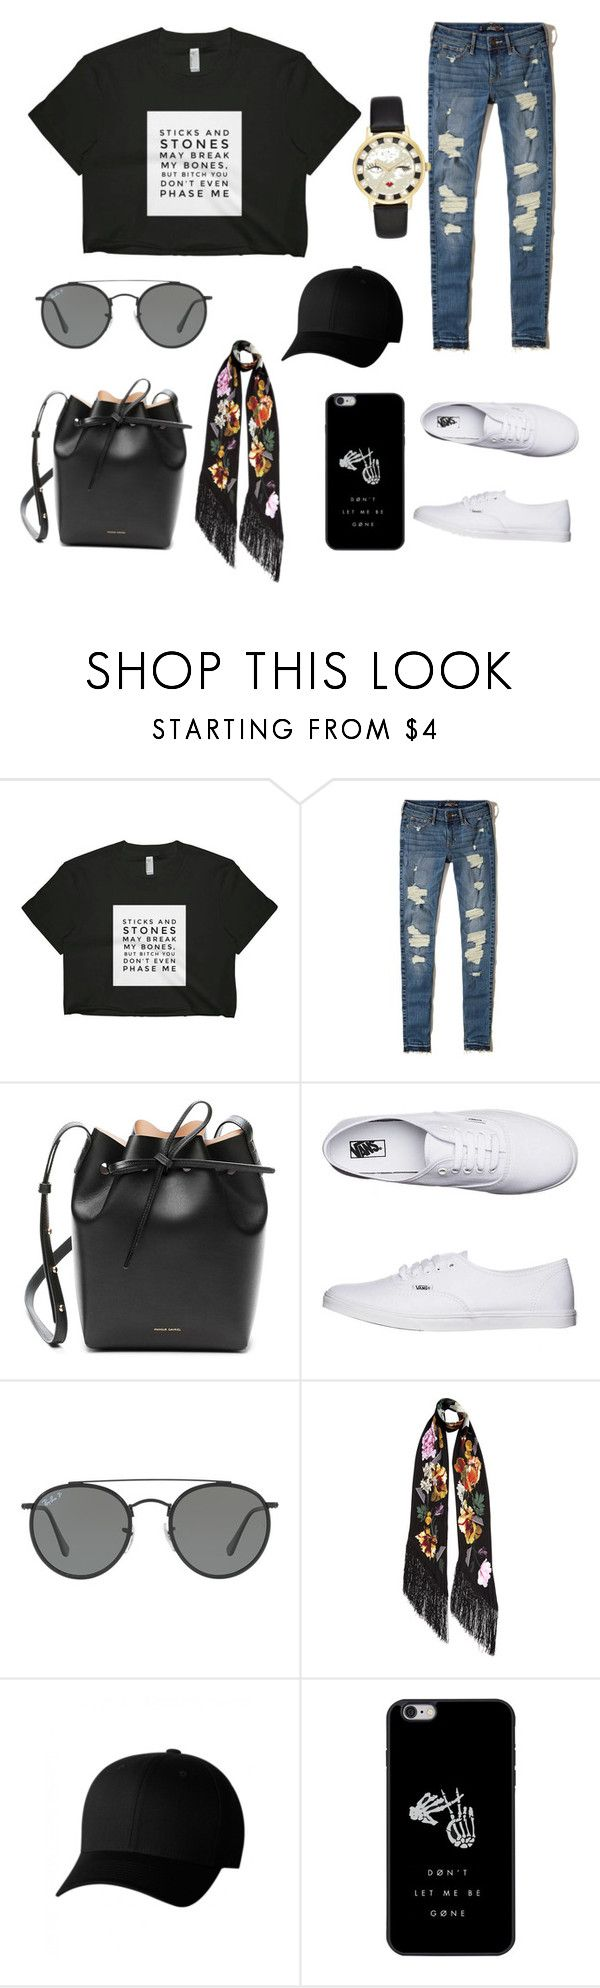 """""""Untitled #1"""" by dita-putri ❤ liked on Polyvore featuring Hollister Co., Mansur Gavriel, Vans, Ray-Ban, Rockins, Flexfit and Kate Spade"""